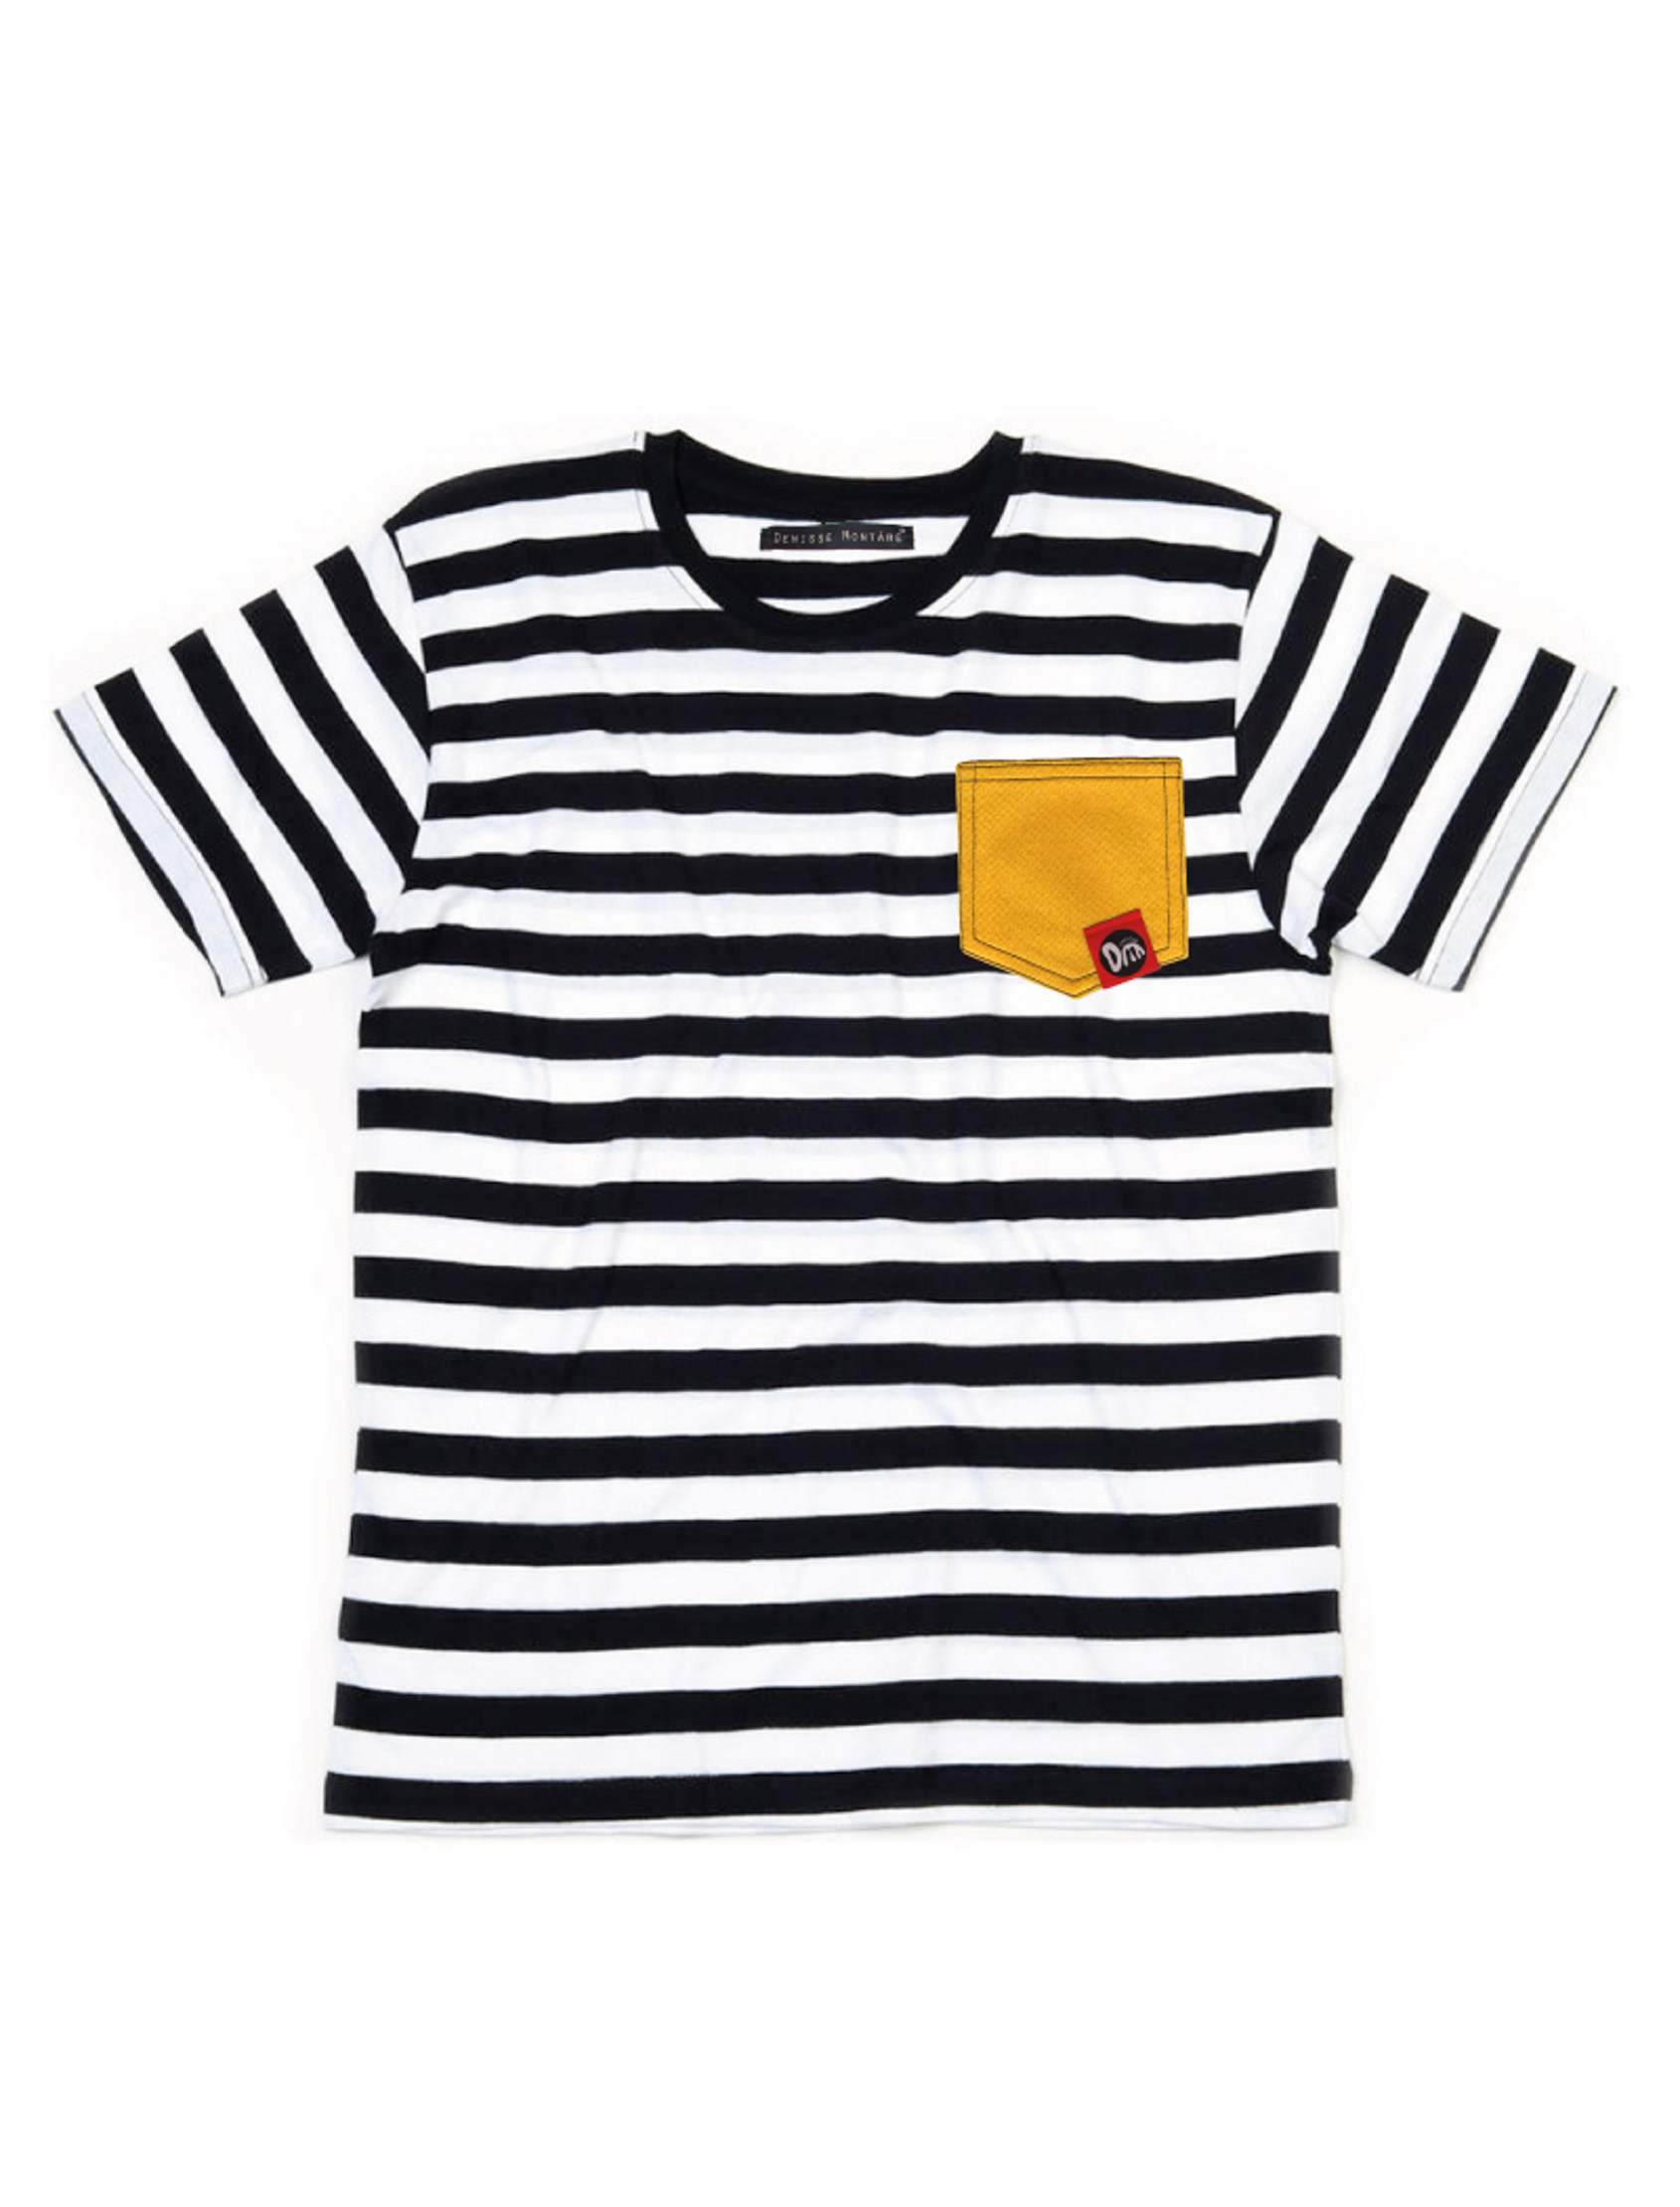 CamisetaYELLOWPOCKET_01